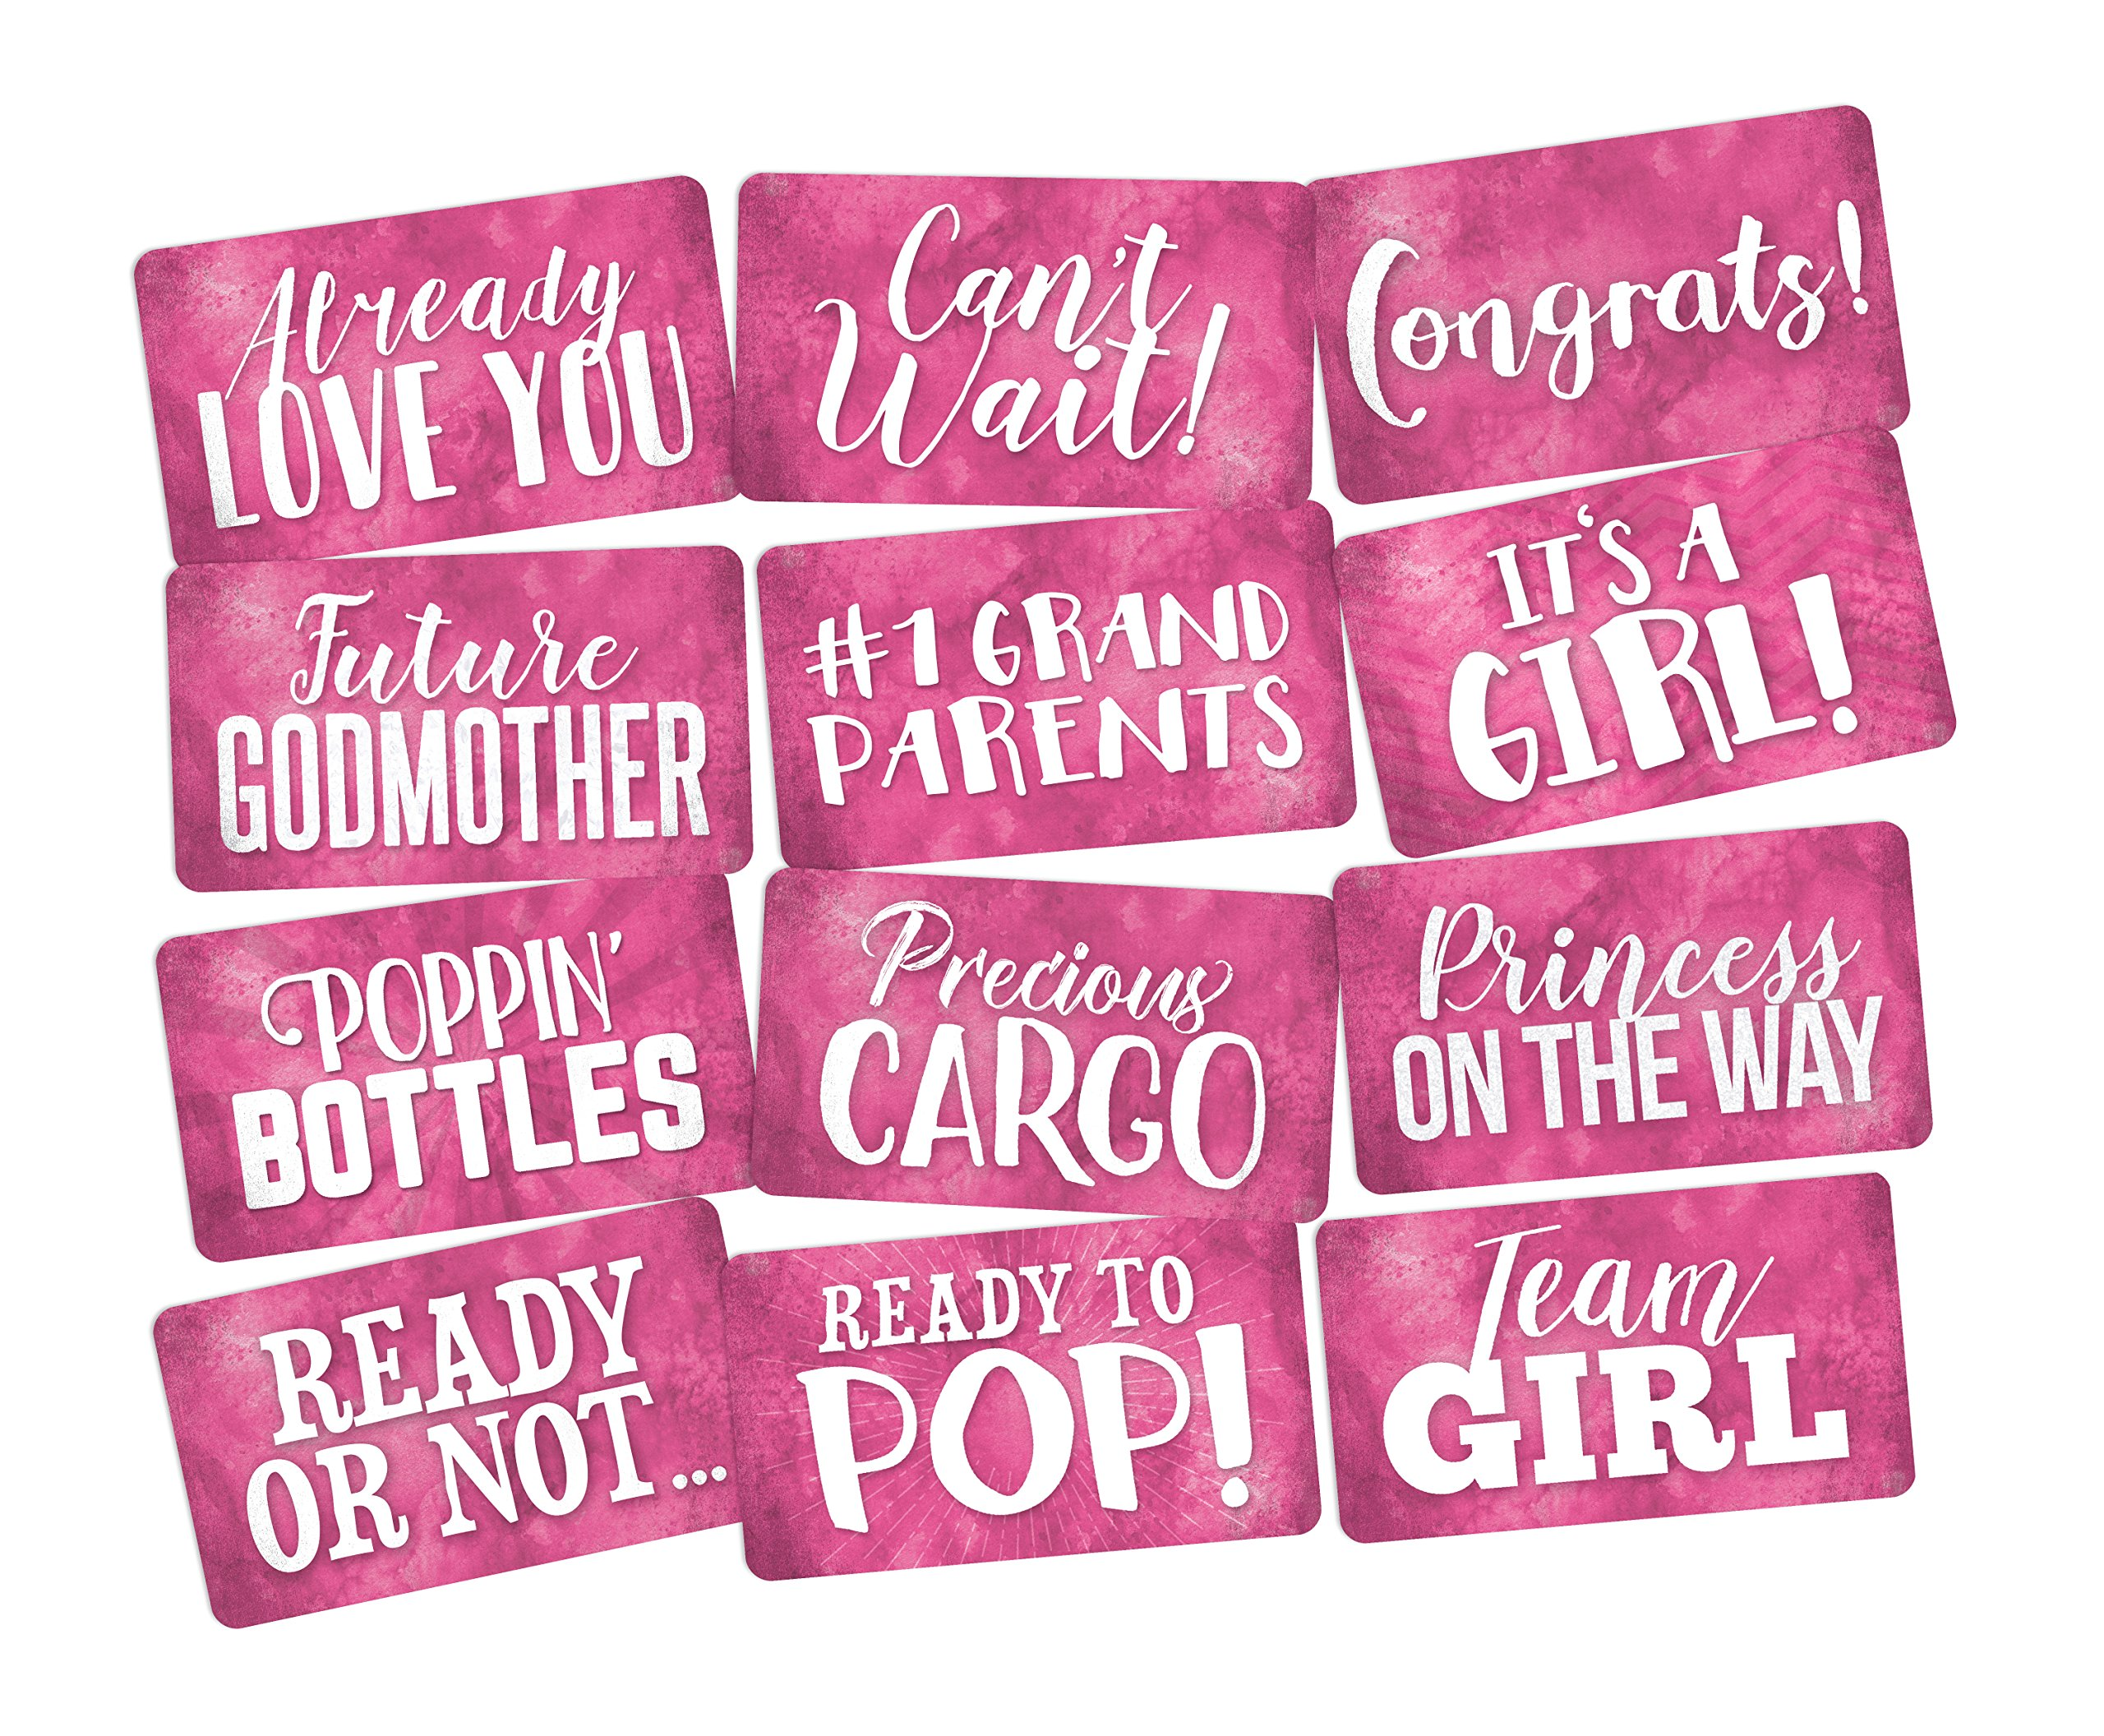 Photo Booth Props Set It's a Girl Perfect for Pink Baby Shower 6pc Double Sided by King Props LLC